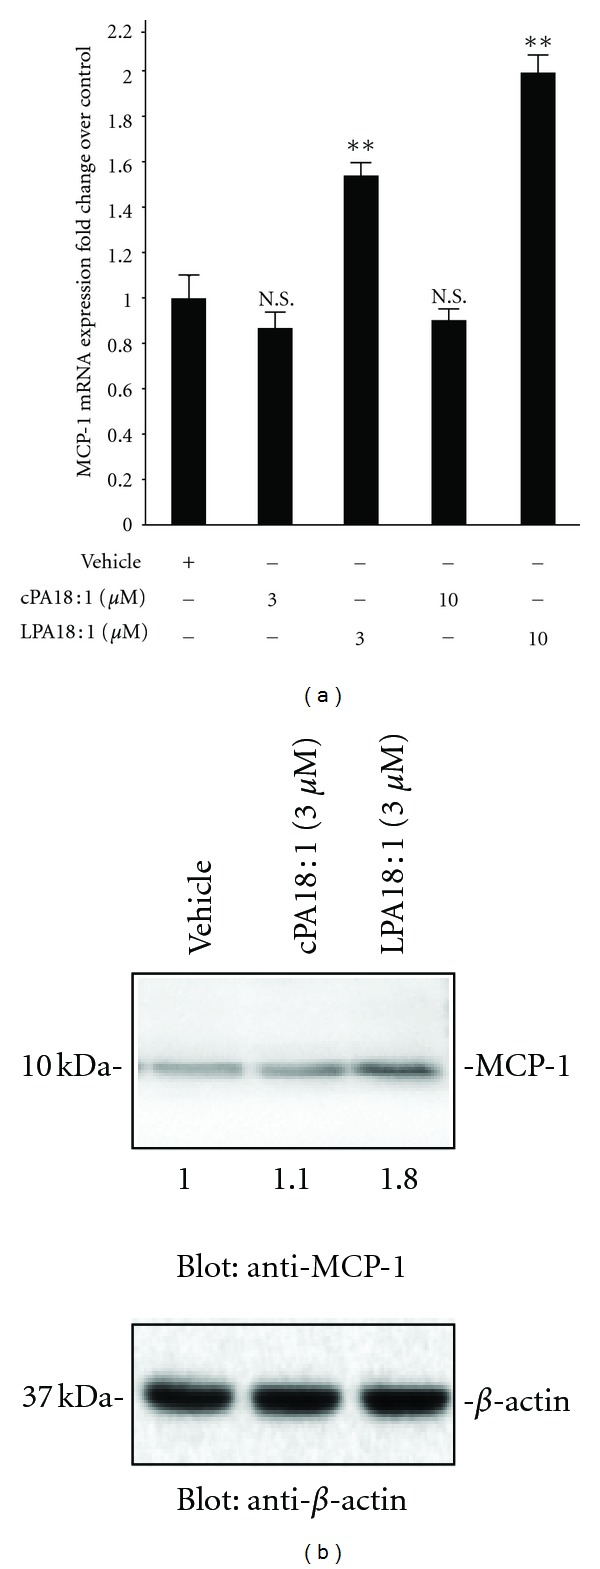 LPA induction of the secretion of MCP-1 was confirmed by RT-PCR and western blot analysis. (a) C2C12 cells were exposed to vehicle, unsaturated forms of LPA (18 : 1) (3 μ M), and cPA (18 : 1) (3 μ M) for 24 h, and RNA was isolated. The mRNA levels of MCP-1 were determined by real-time PCR. MCP-1 mRNA levels were normalized to 18S rRNA (mean ± SEM, n = 3; ** P